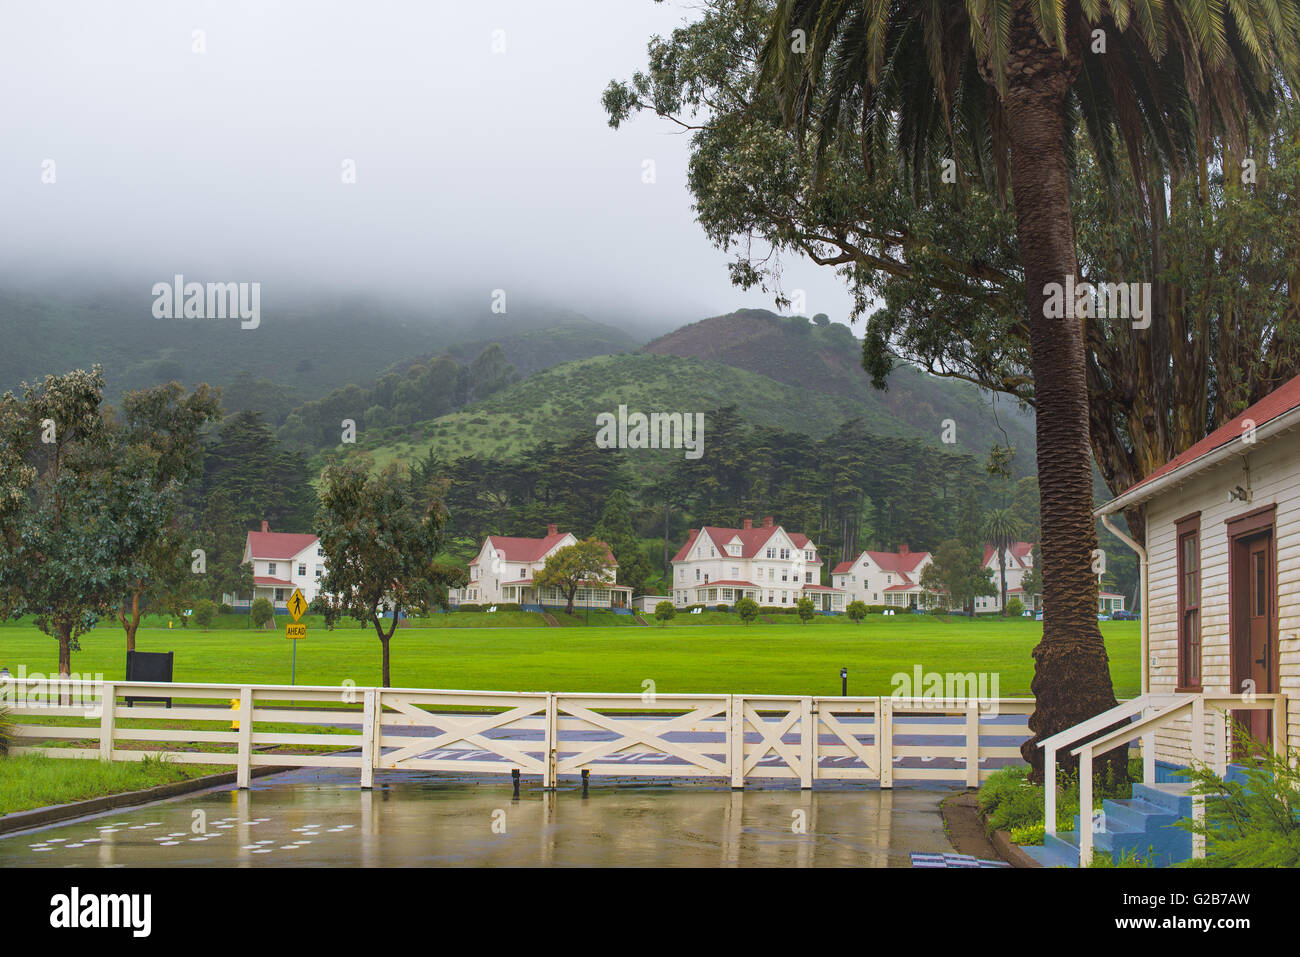 Houses and trees around Godlden Gate Park, San Francisco - Stock Image